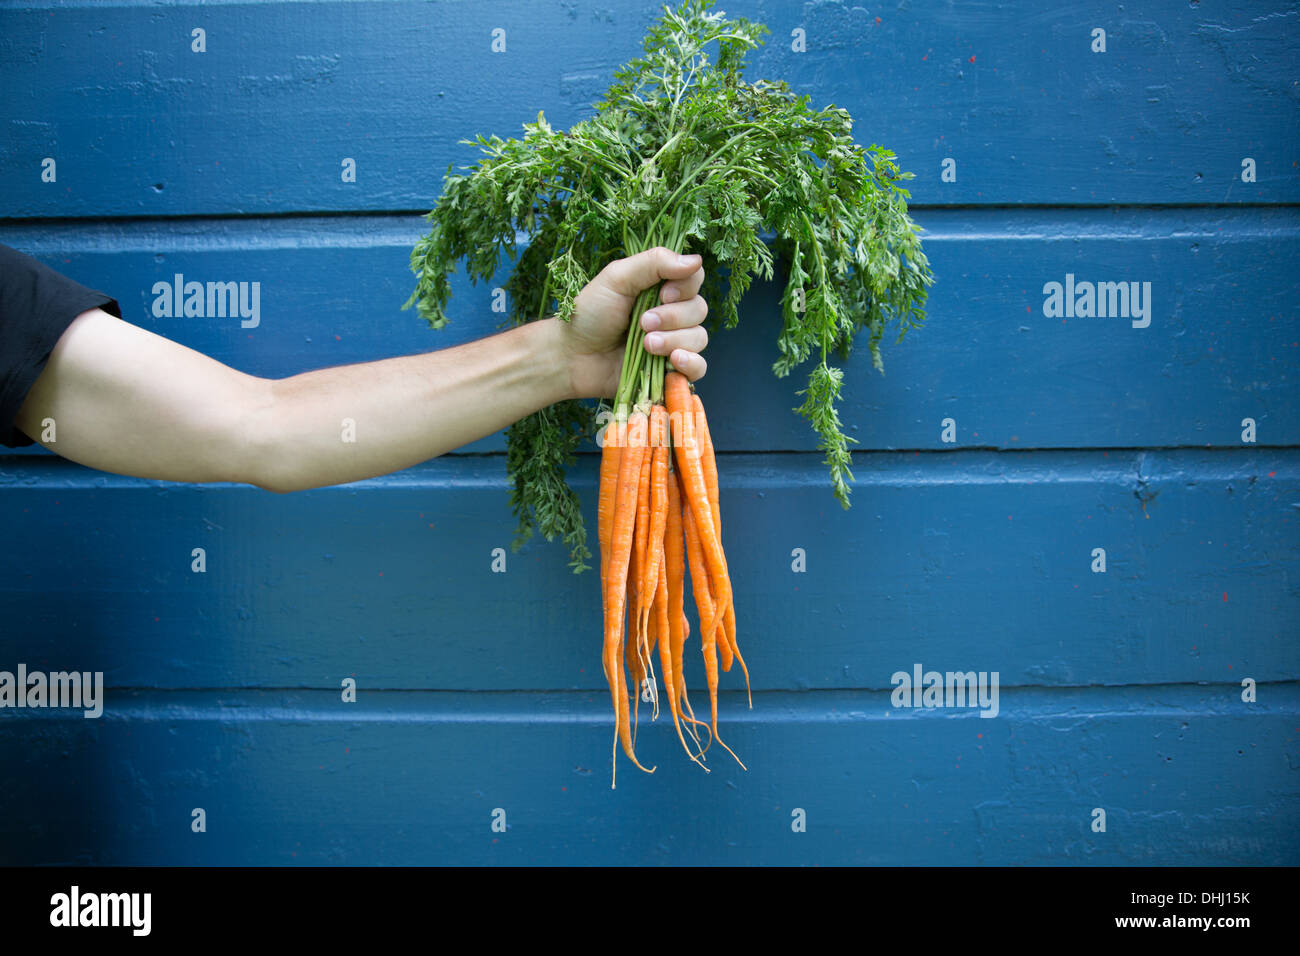 Man holding bunch of organic carrots - Stock Image